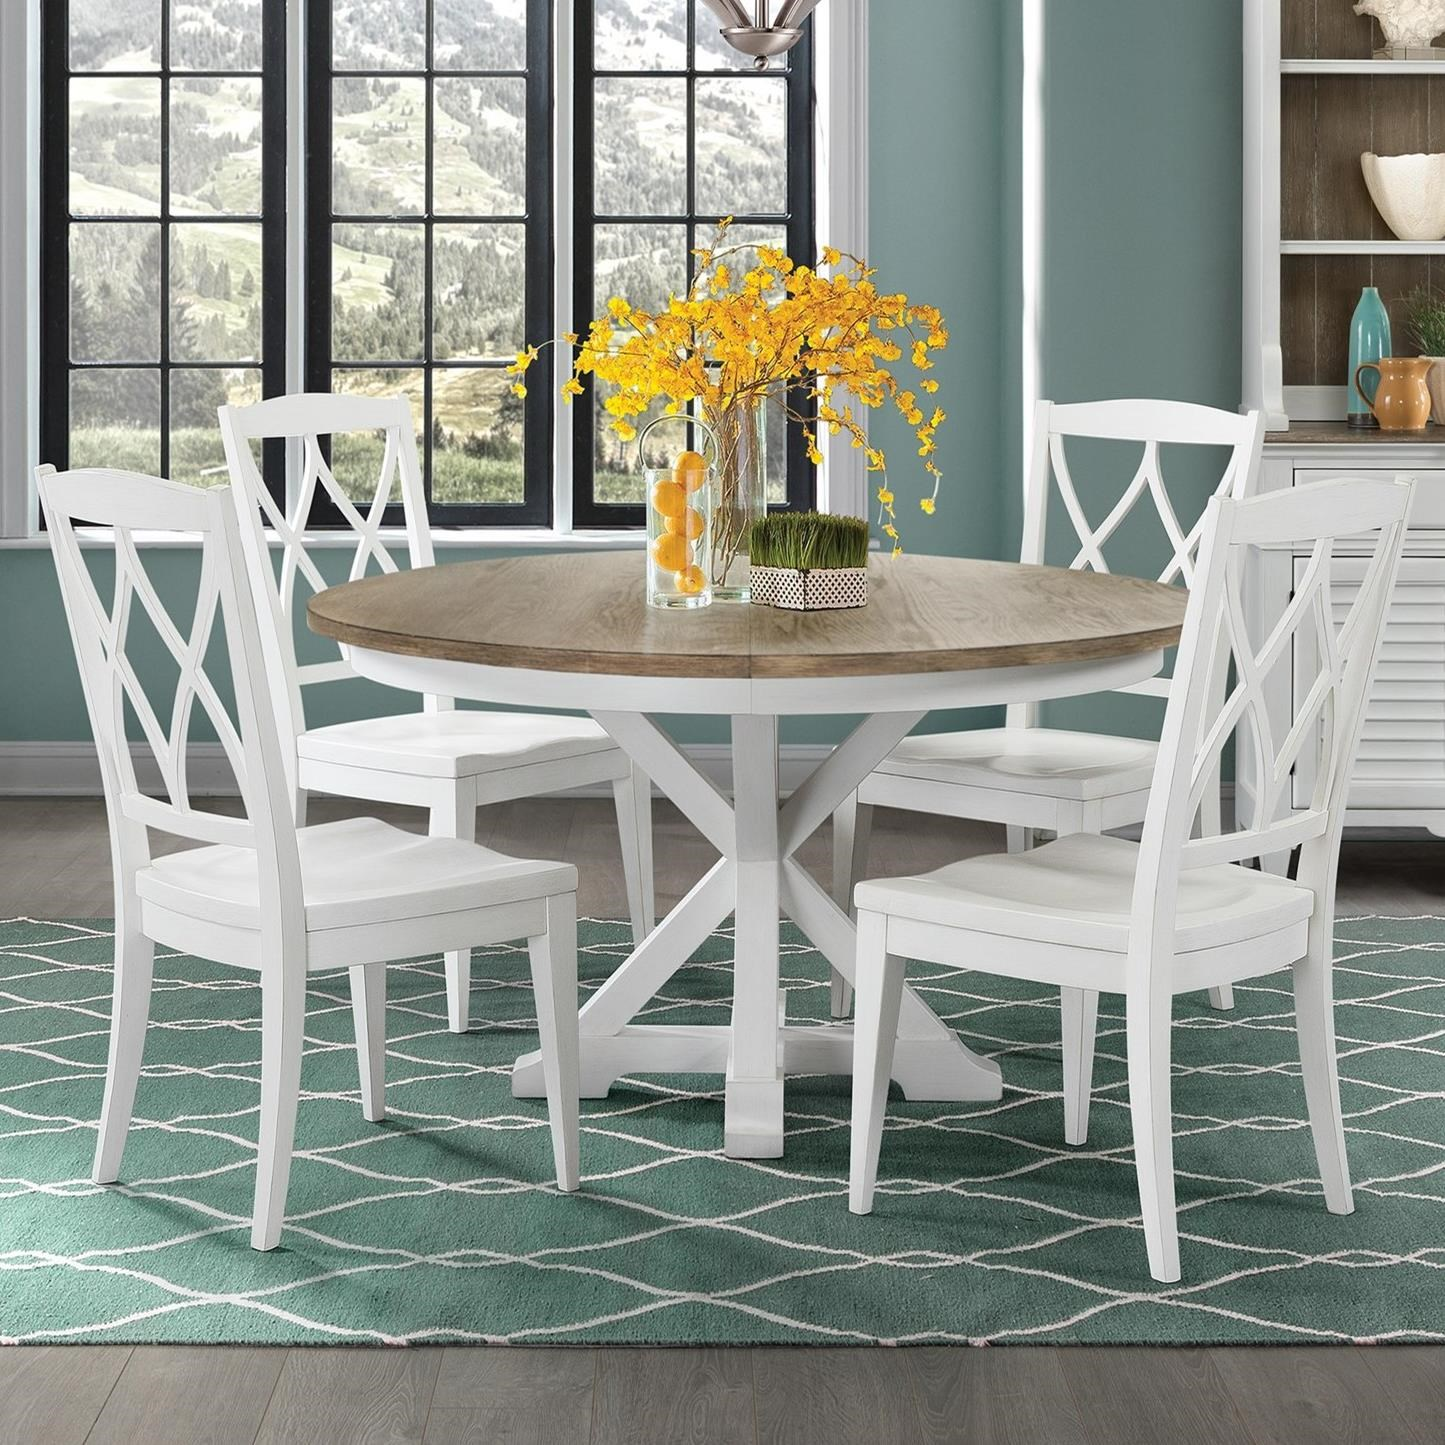 Myra 5 Piece Table and Chair Set by Riverside Furniture at Johnny Janosik